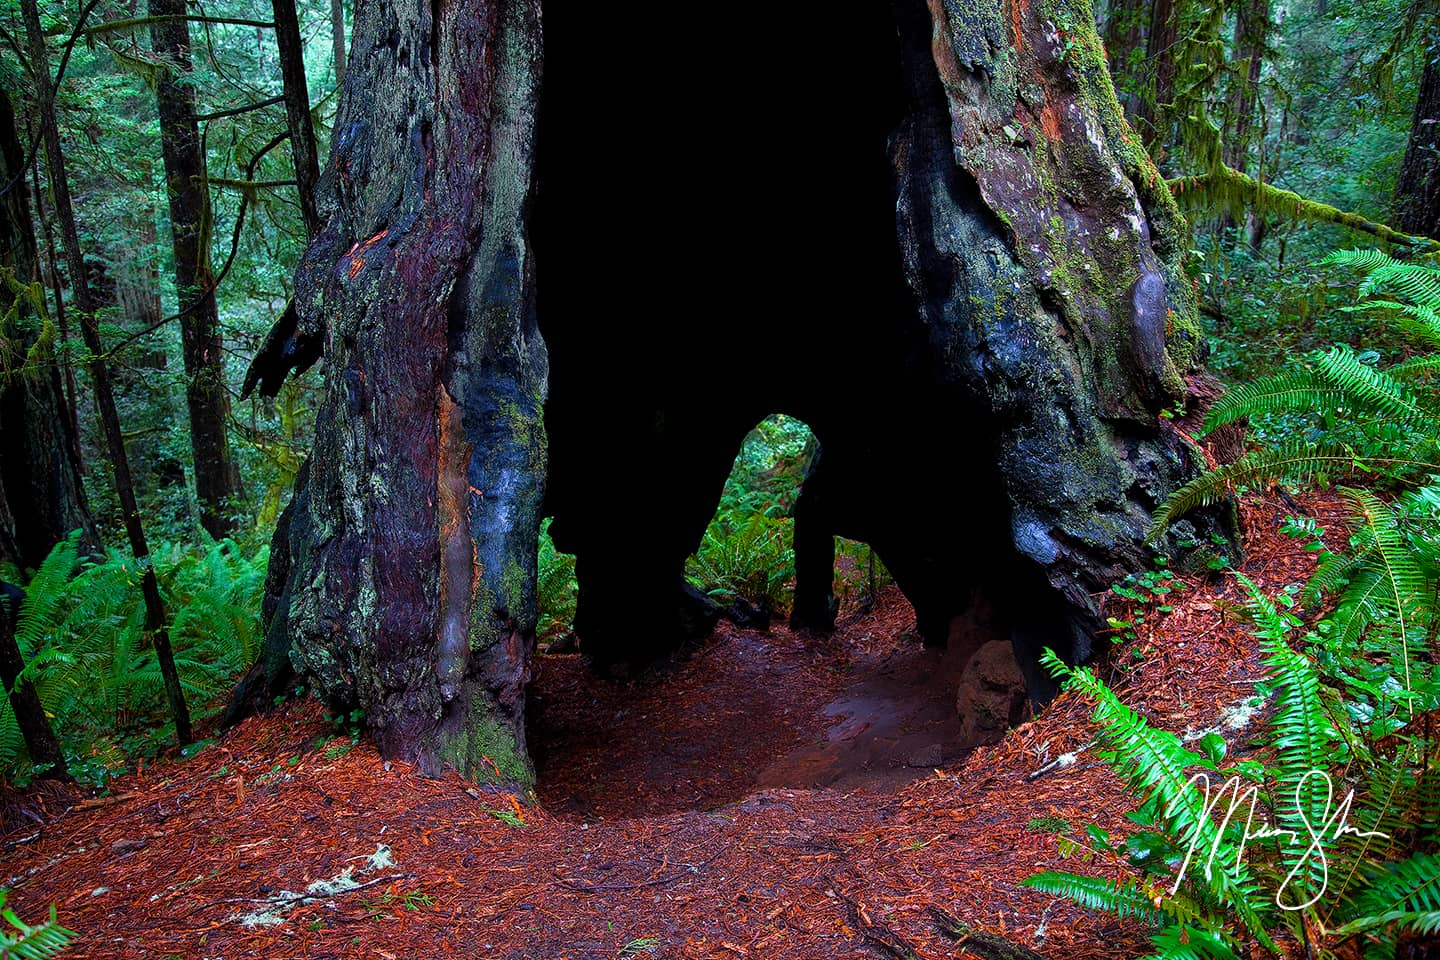 Hallowed Ground - Lady Bird Johnson Grove, Redwood National Park, California